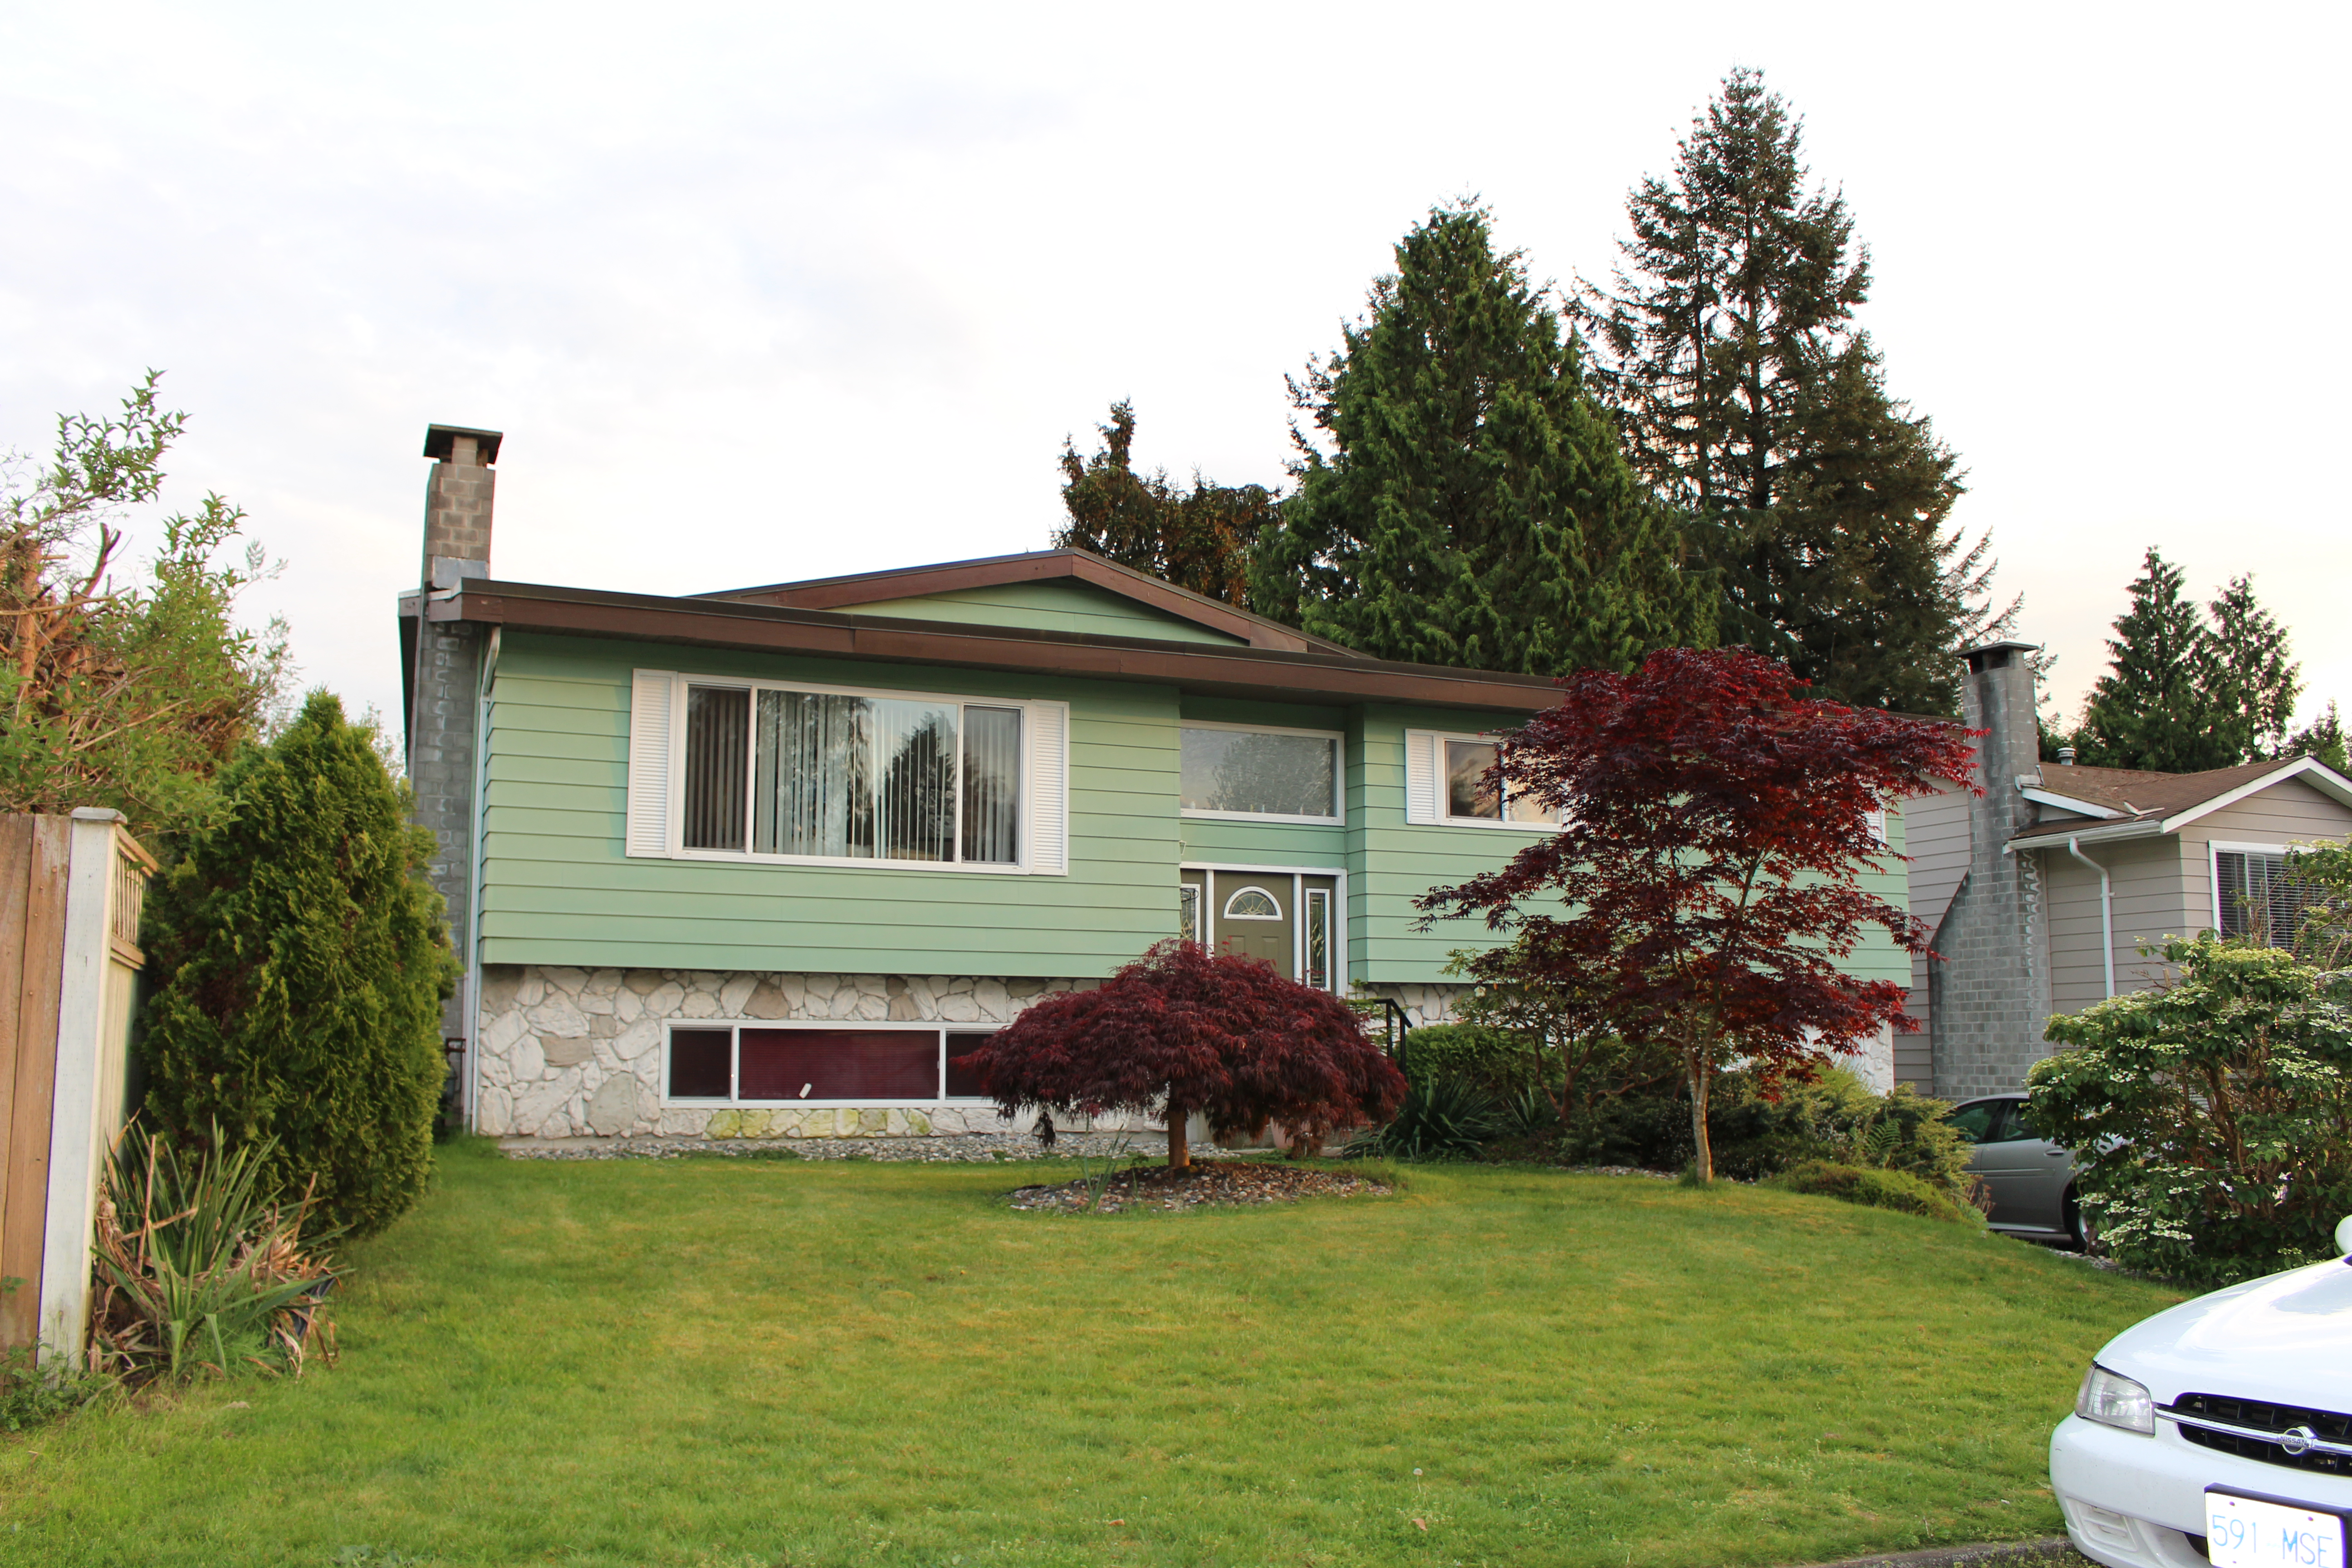 GREAT HOME IN A FAMILY FRIENDLY LOCATION!